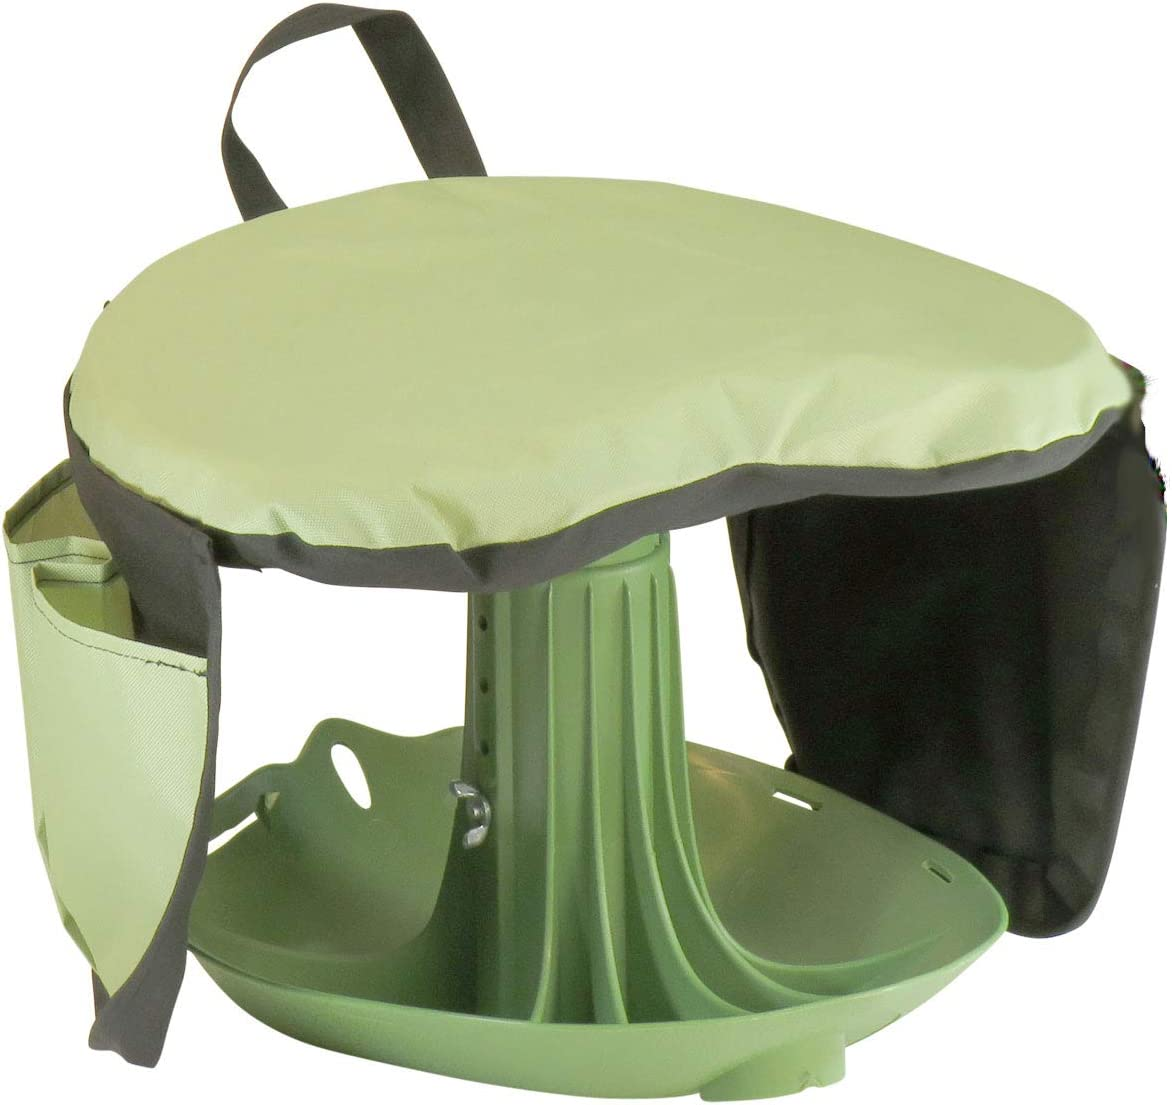 Vertex Premium Garden Rocker with Cushion, Cover and Pockets | Gardeners Work Seat Stool for Weeding Planting Tool | Made in USA | Model GB1227